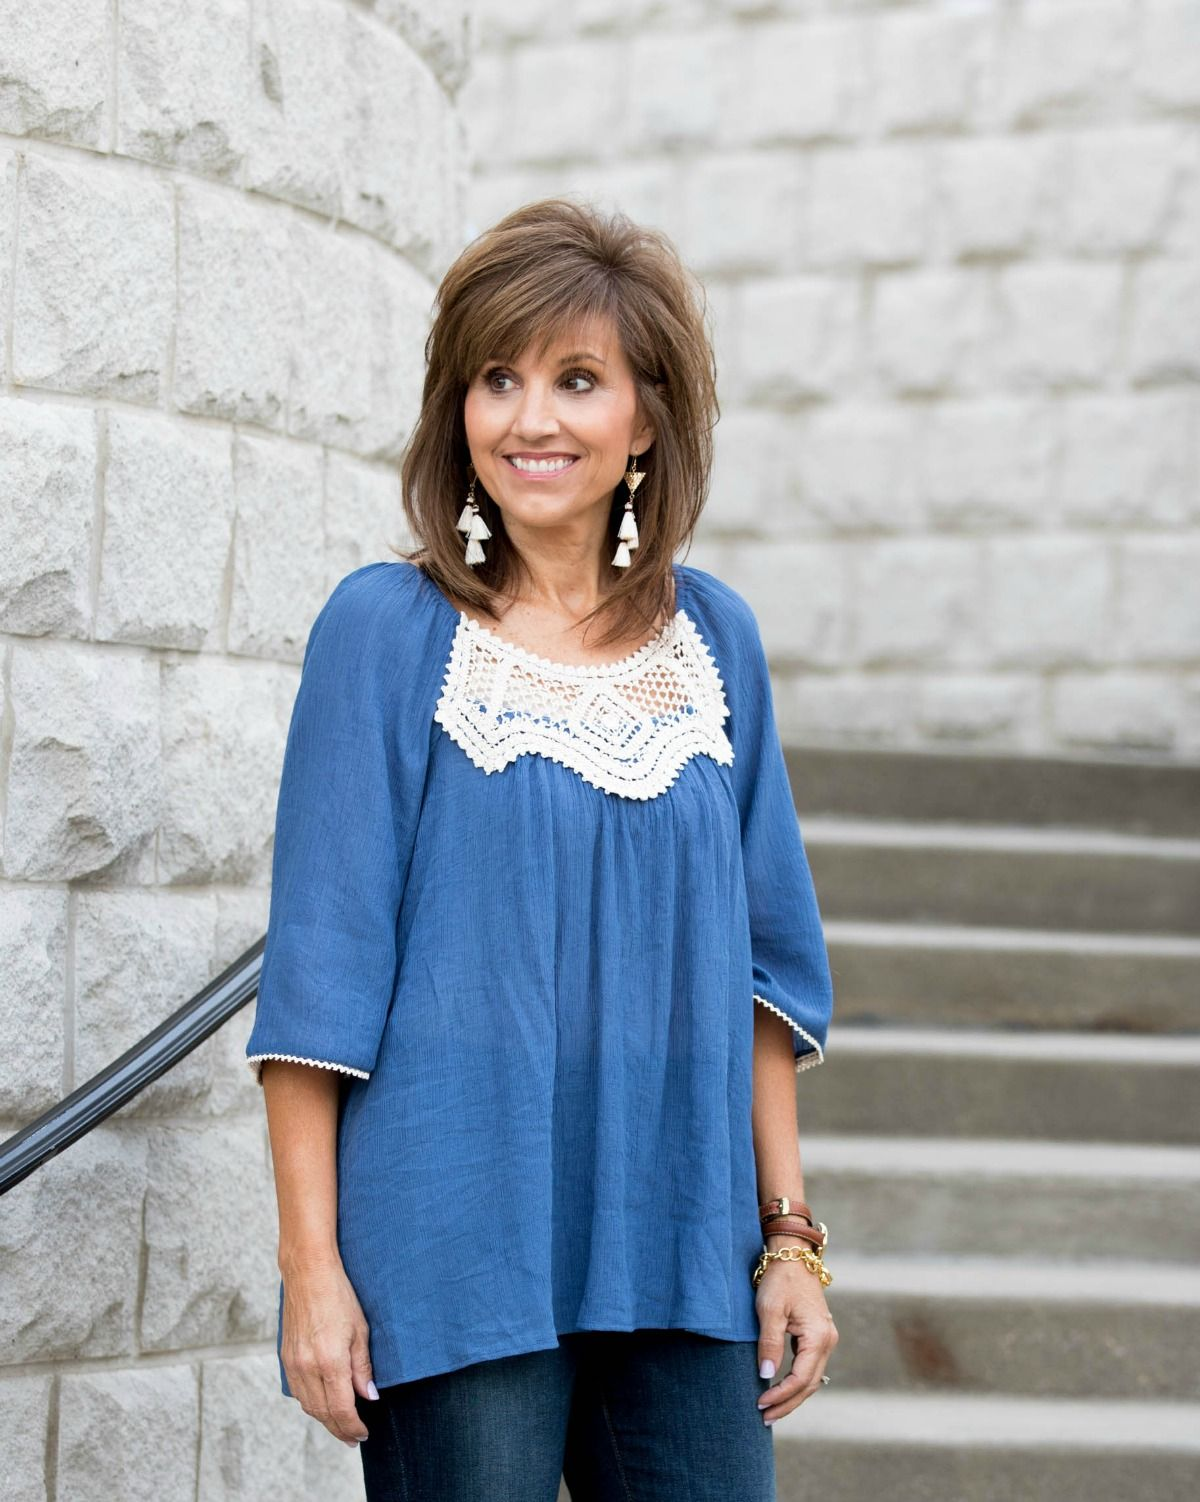 These tassel earrings are right on trend this fall. They will be fun to add to my fall outfits.